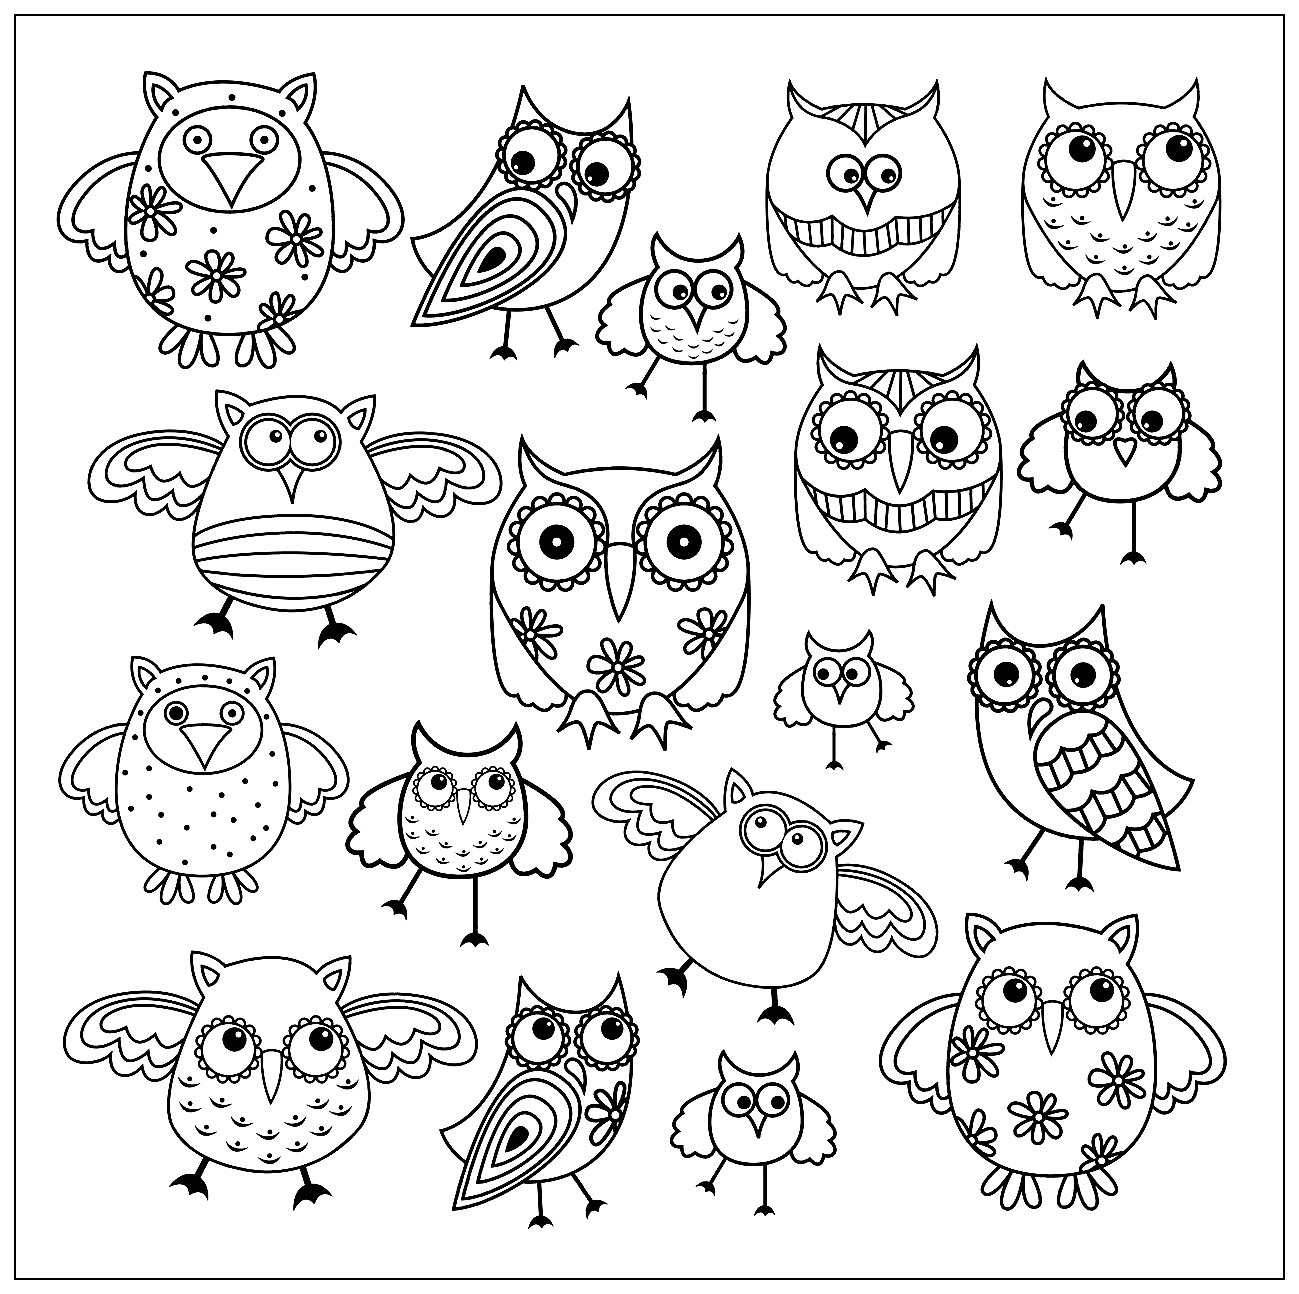 Doodle owls 2 Animals Coloring pages for adults JustColor